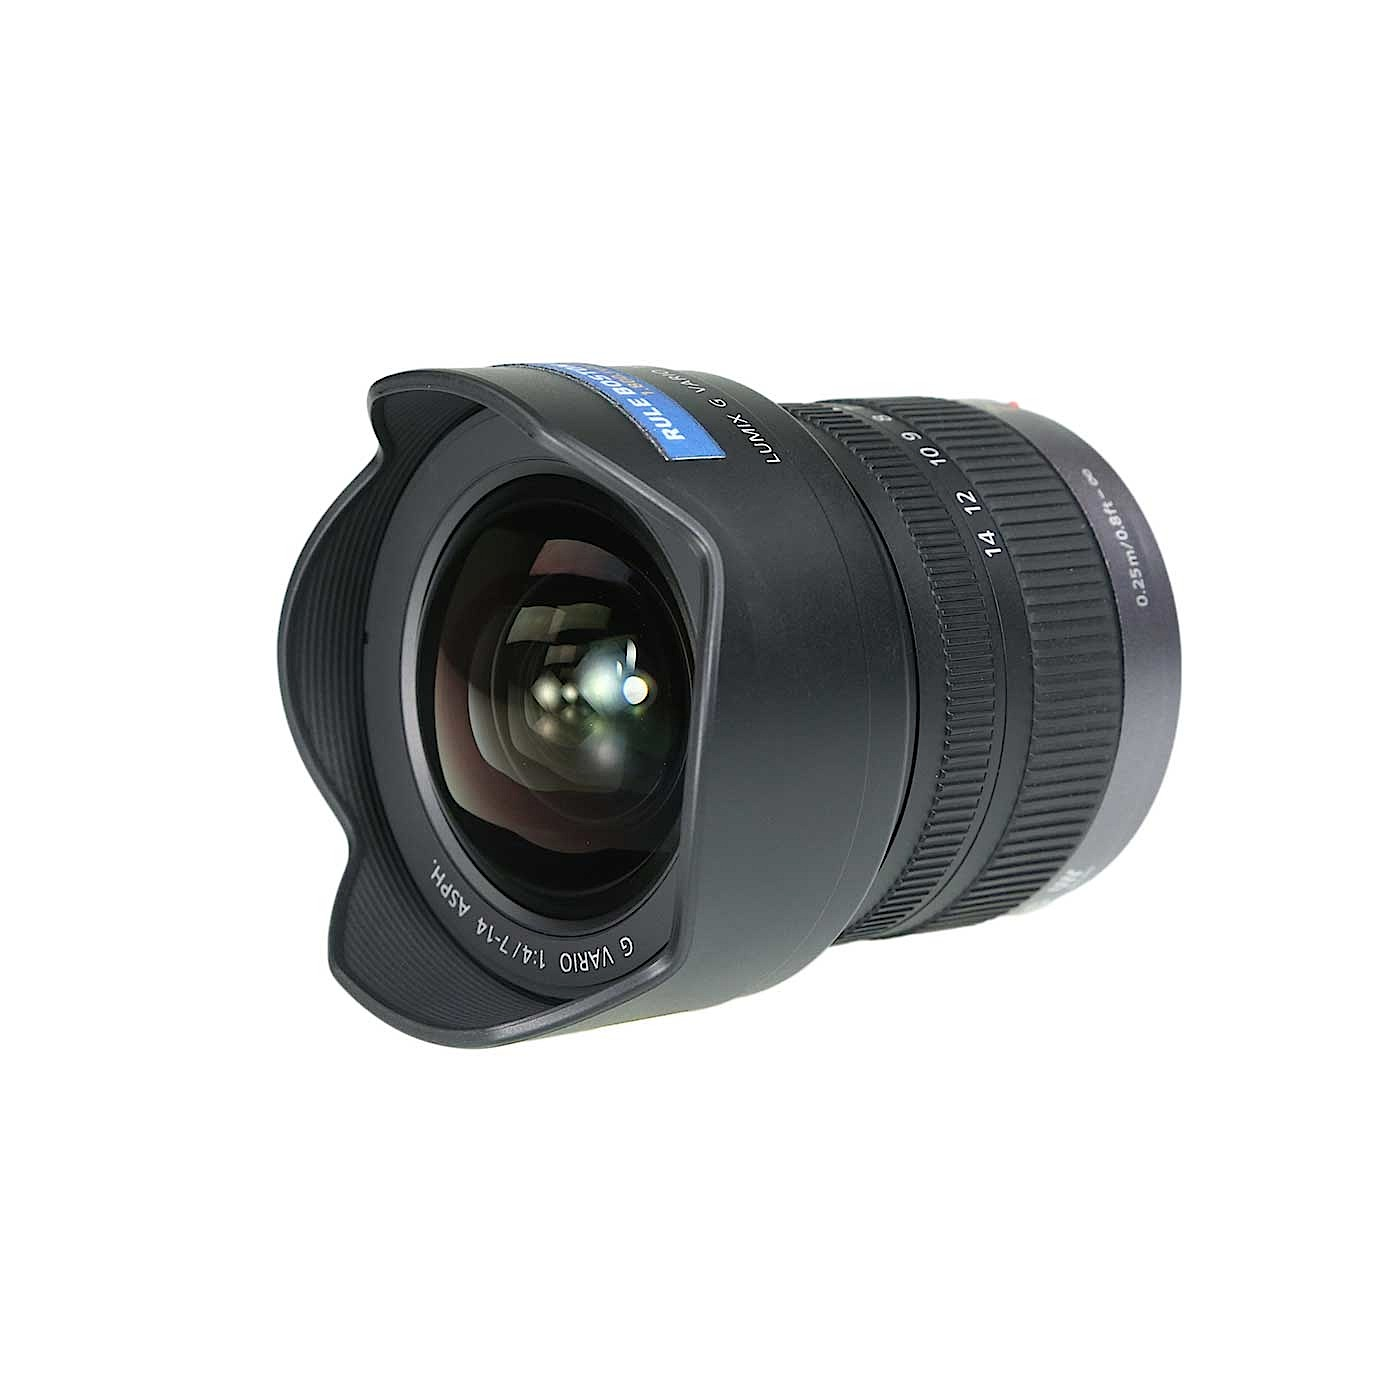 Panasonic 7-14mm f4.0 Lumix Zoom Lens